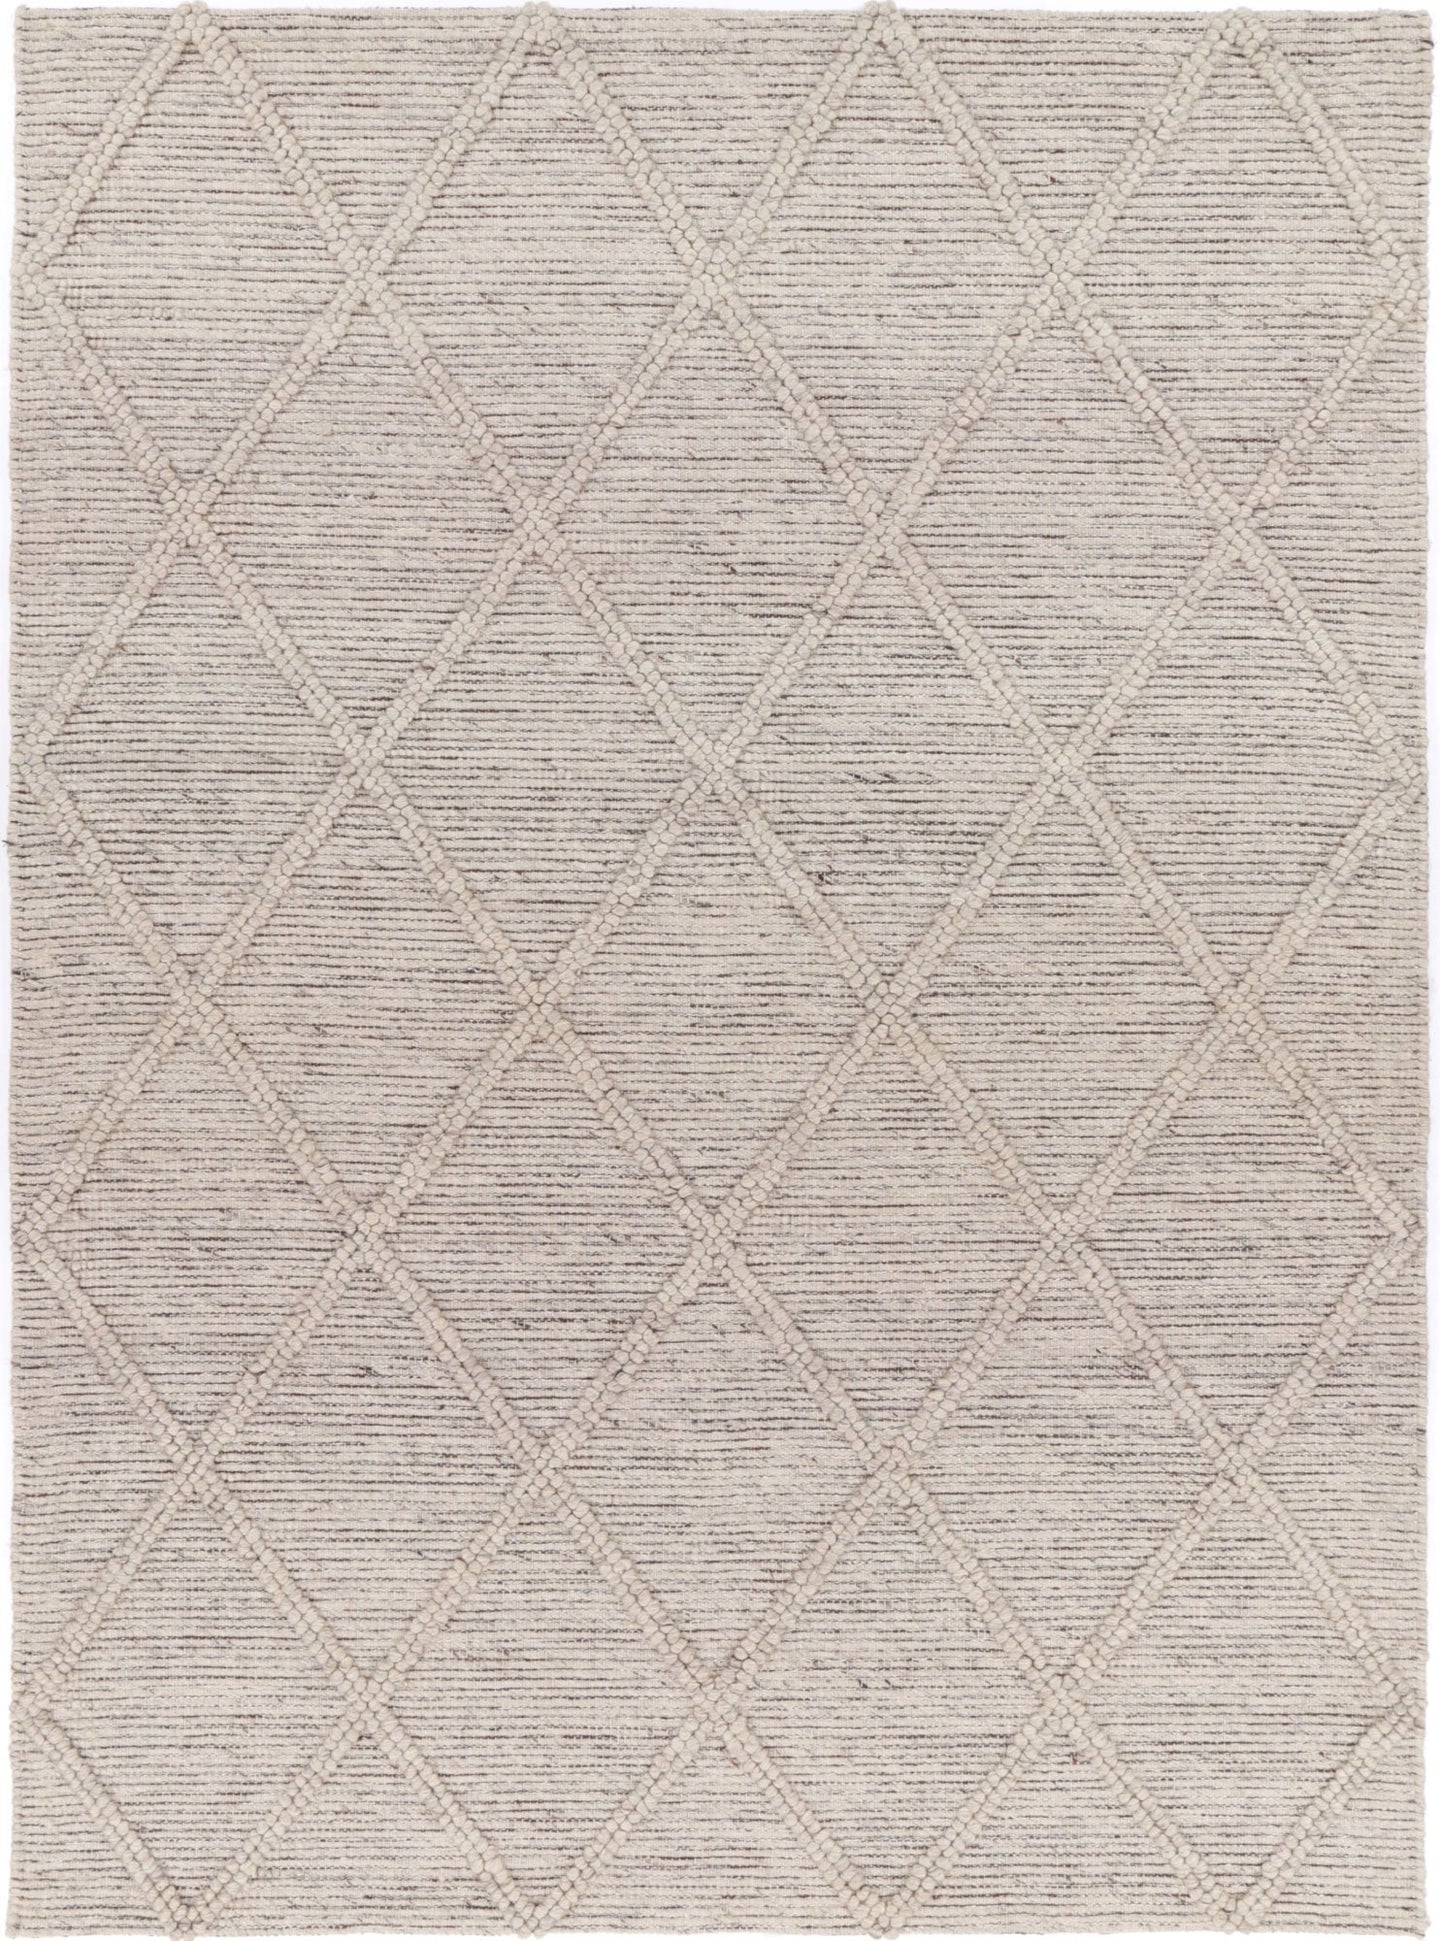 Sara Diamond Braided Ash Rug freeshipping - Rug Empire